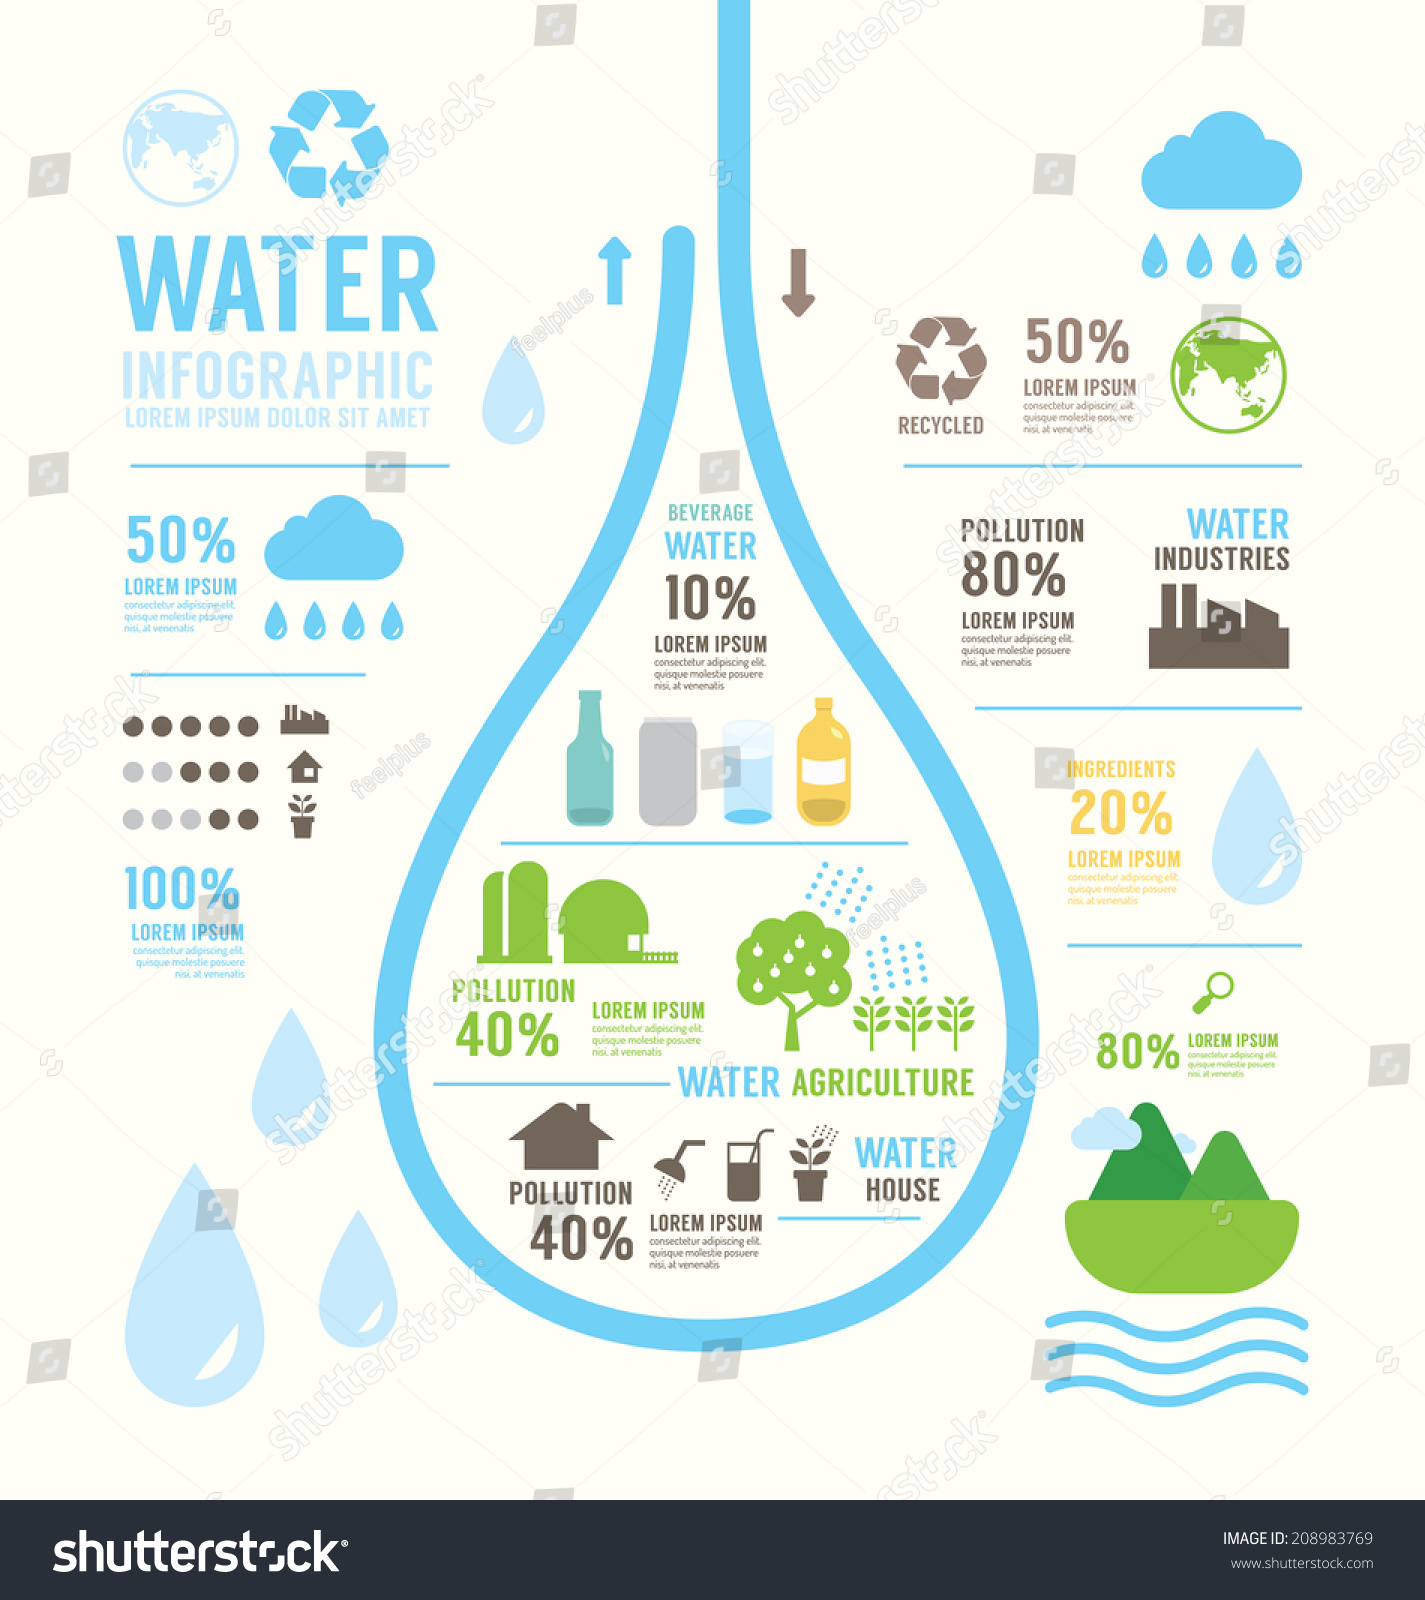 infographic water eco annual report template stock vector infographic water eco annual report template design concept vector illustration